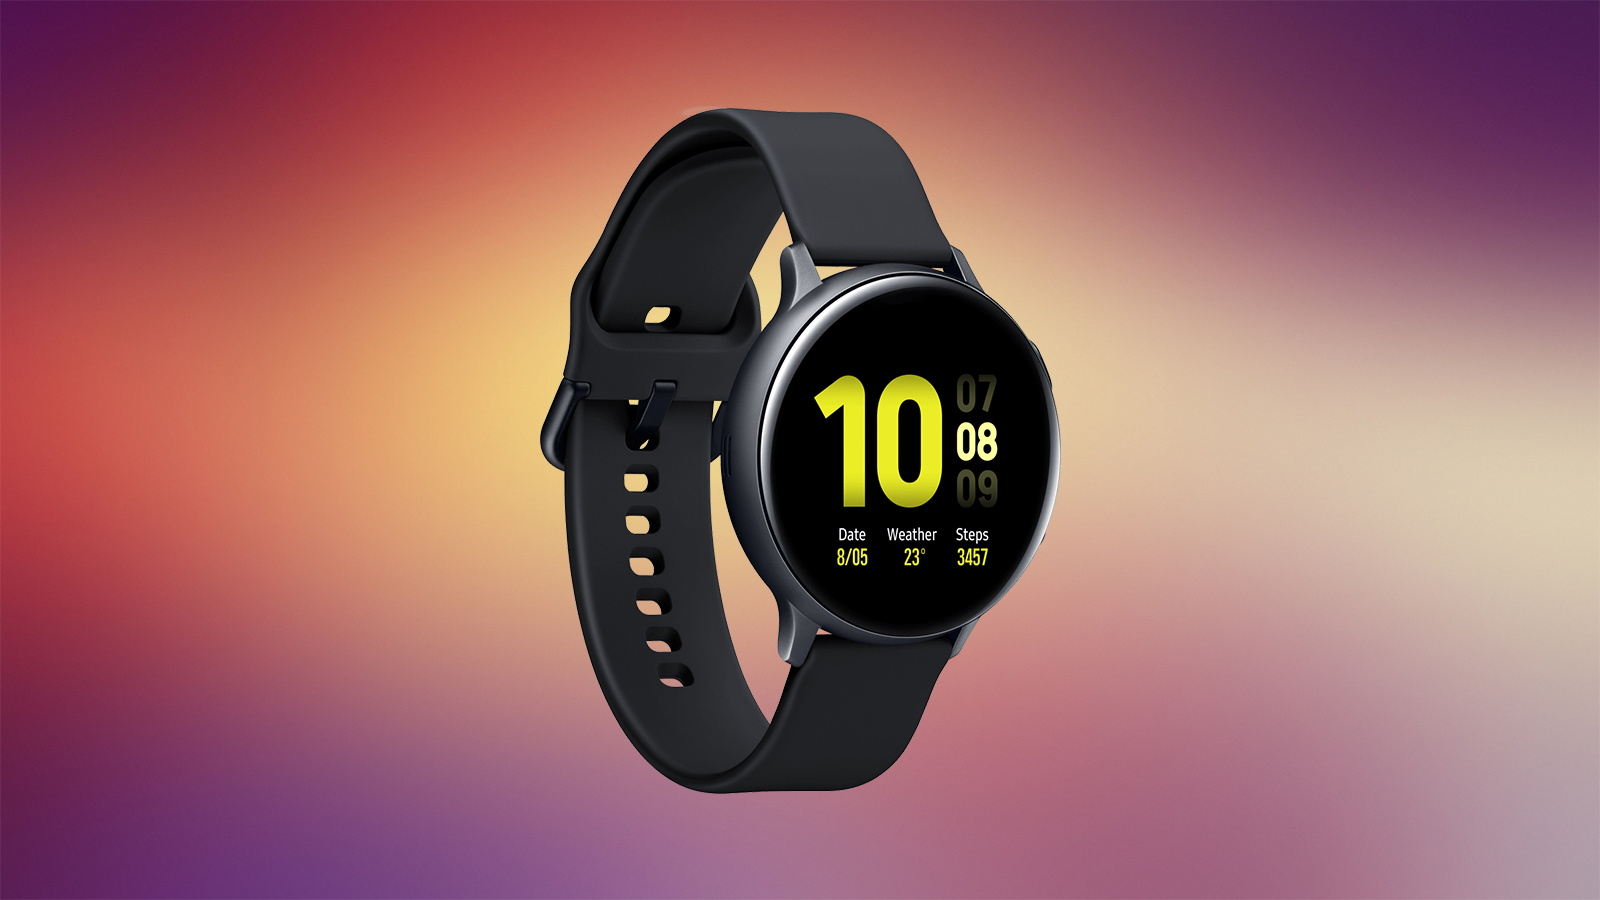 Get Samsung's Galaxy Watch Active 2 for $249.00 | Black Friday 2019